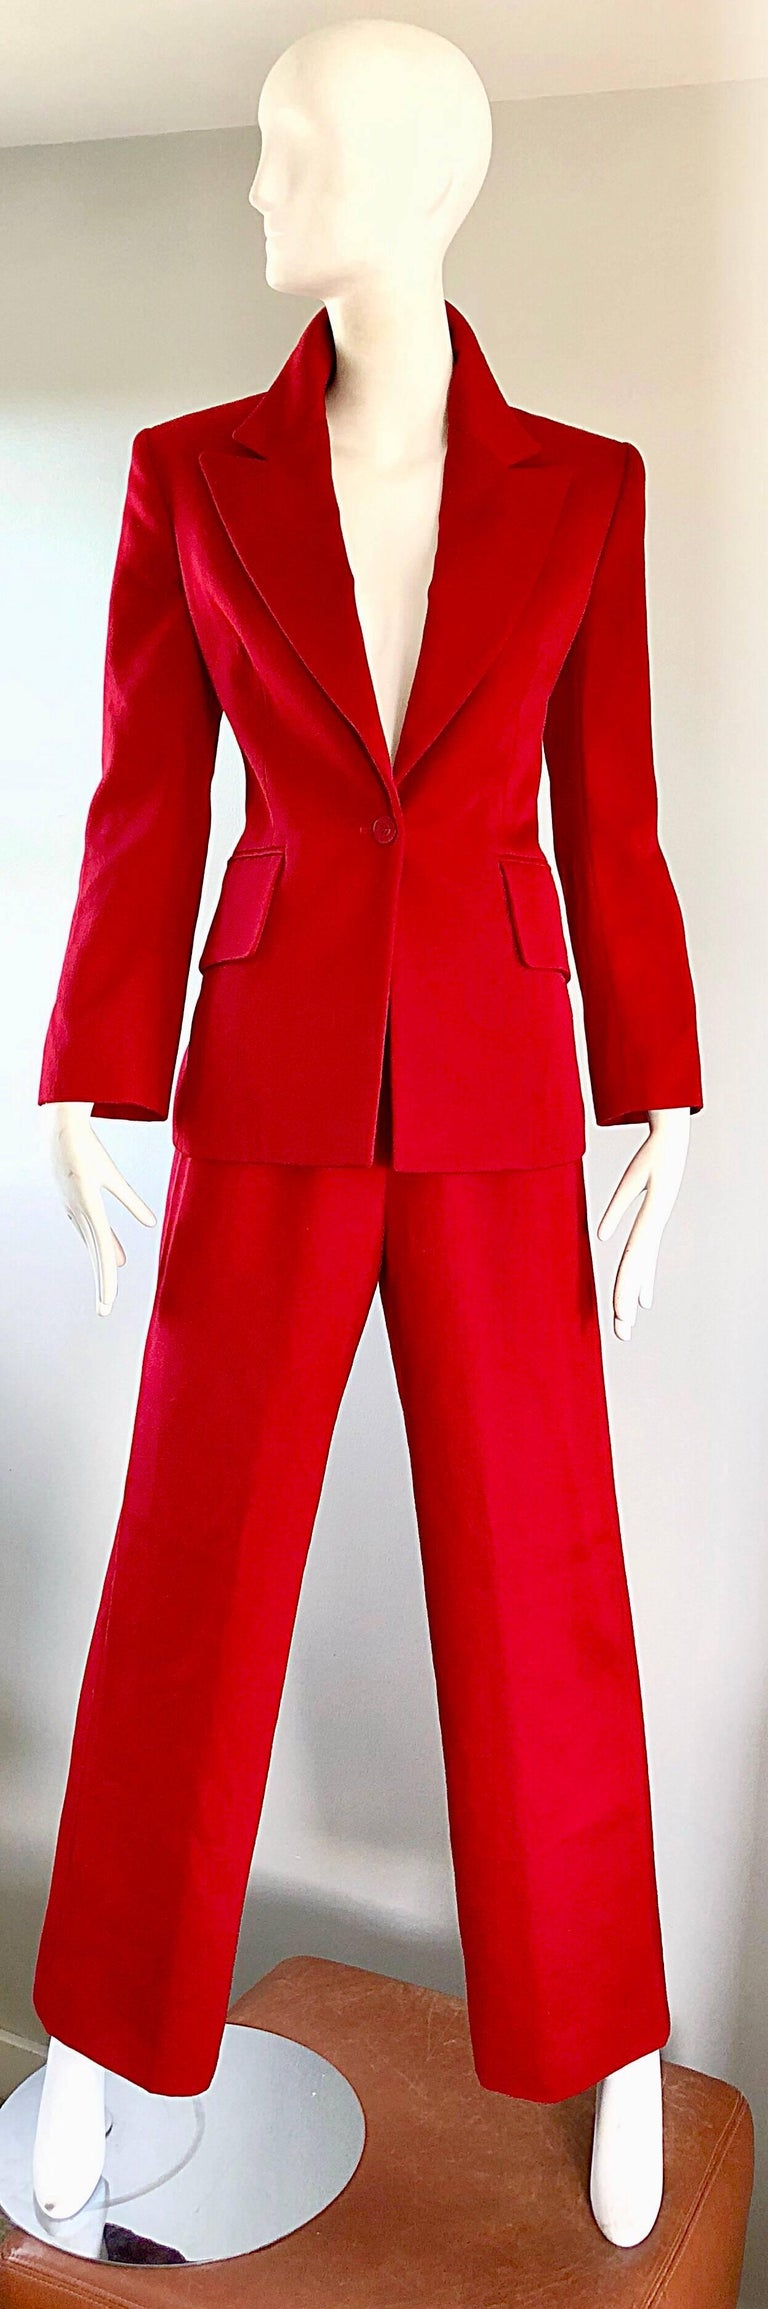 Isaac Mizrahi Vintage 1990s Lipstick Red Wide Leg Wool Le Smoking 90s Pants Suit 9